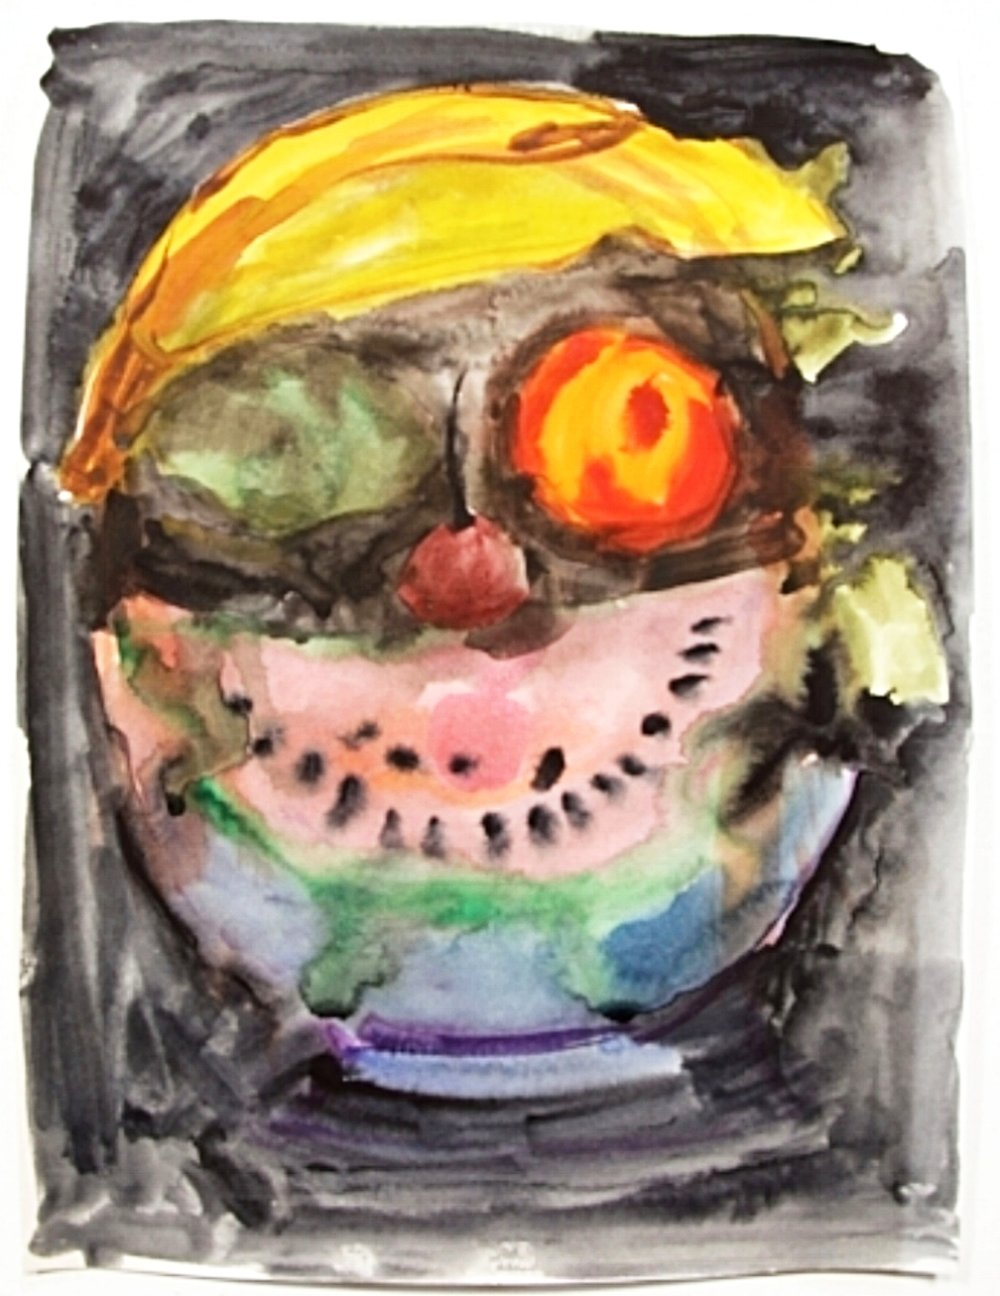 Valerie Hegarty, Fruit Face, 2015, watercolor on paper.